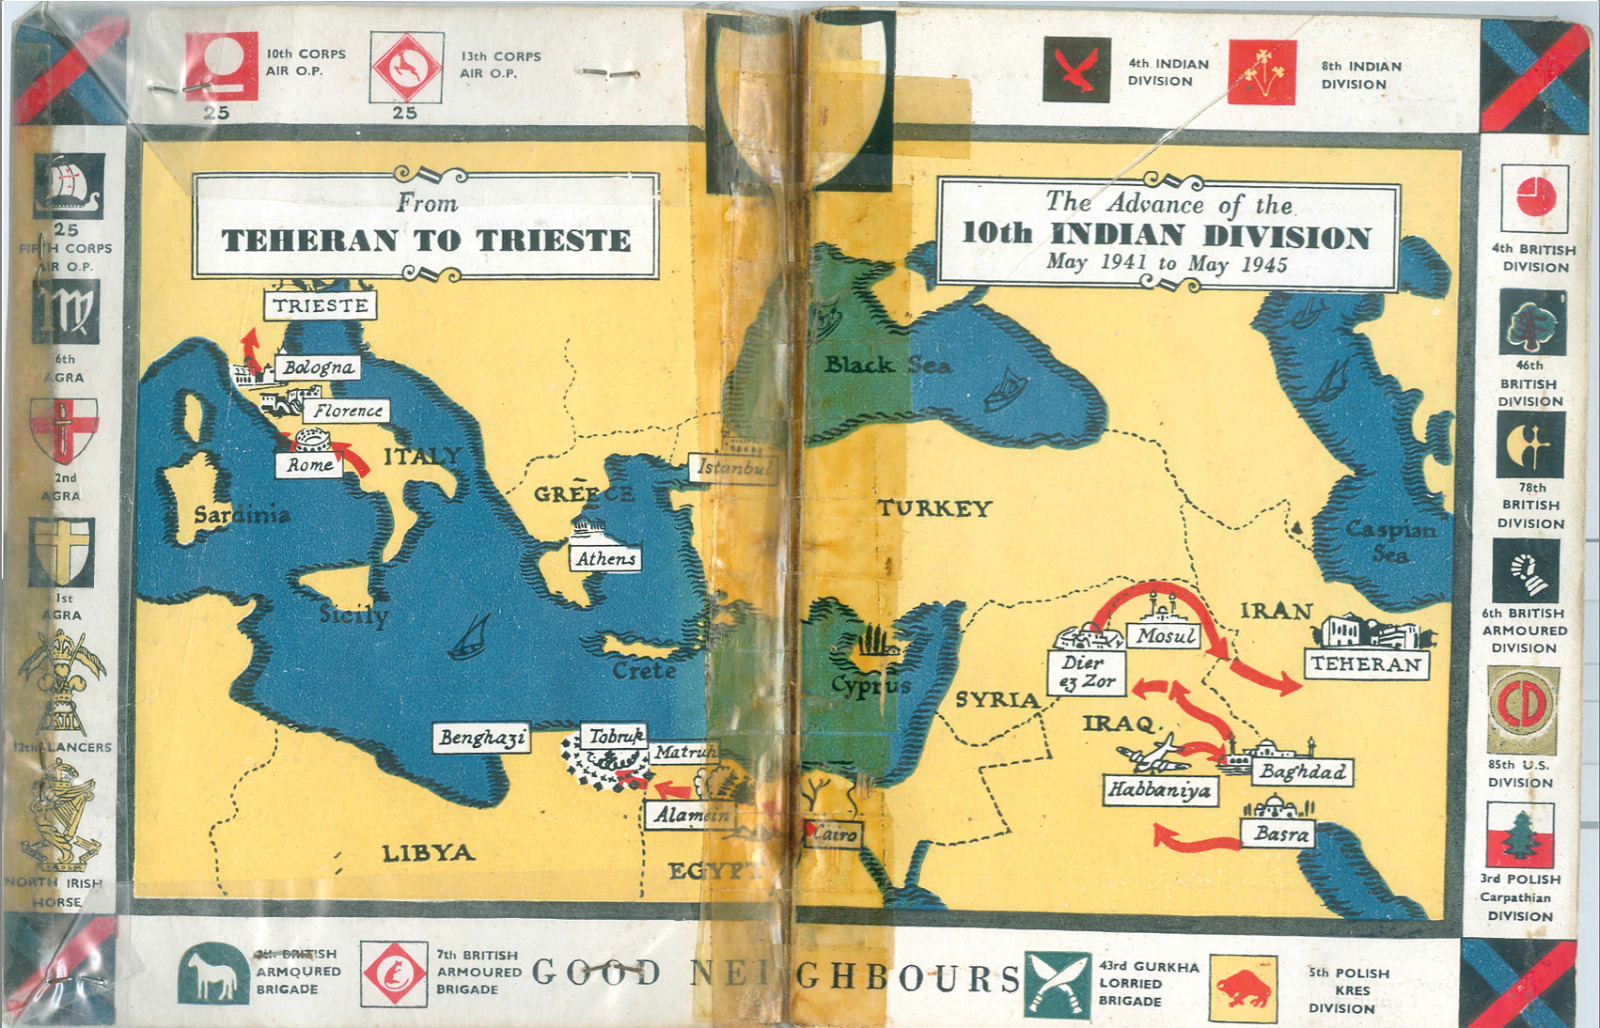 "Teheran to Trieste; The Story of Tenth Indian Divison,  ""We had scrambled thought skirmishes of the Iraq rebellion, been blooded, but not too deeply, against the French in Syria, and enjoyed the unrestrainedly opéra bouffe of the invasion of Persia. We had bought our beer in Haifa and drunk it on the shores of the Caspian. We could move, we could fight, and we had begun to build up that most valuable of all assets a tradition of success. We had a good soldierly conceit of ourselves. Now in March 1942, in spite of dust storms.... it was stimulating to be in what we all felt was a critical spot, waiting for the threatened German invasion of Turkey."" -Major-General William Slim gurkha ww2 history nepal gurkhas gorkha gorkhali sirkukri blog research royal kukri khukuri sword knife"